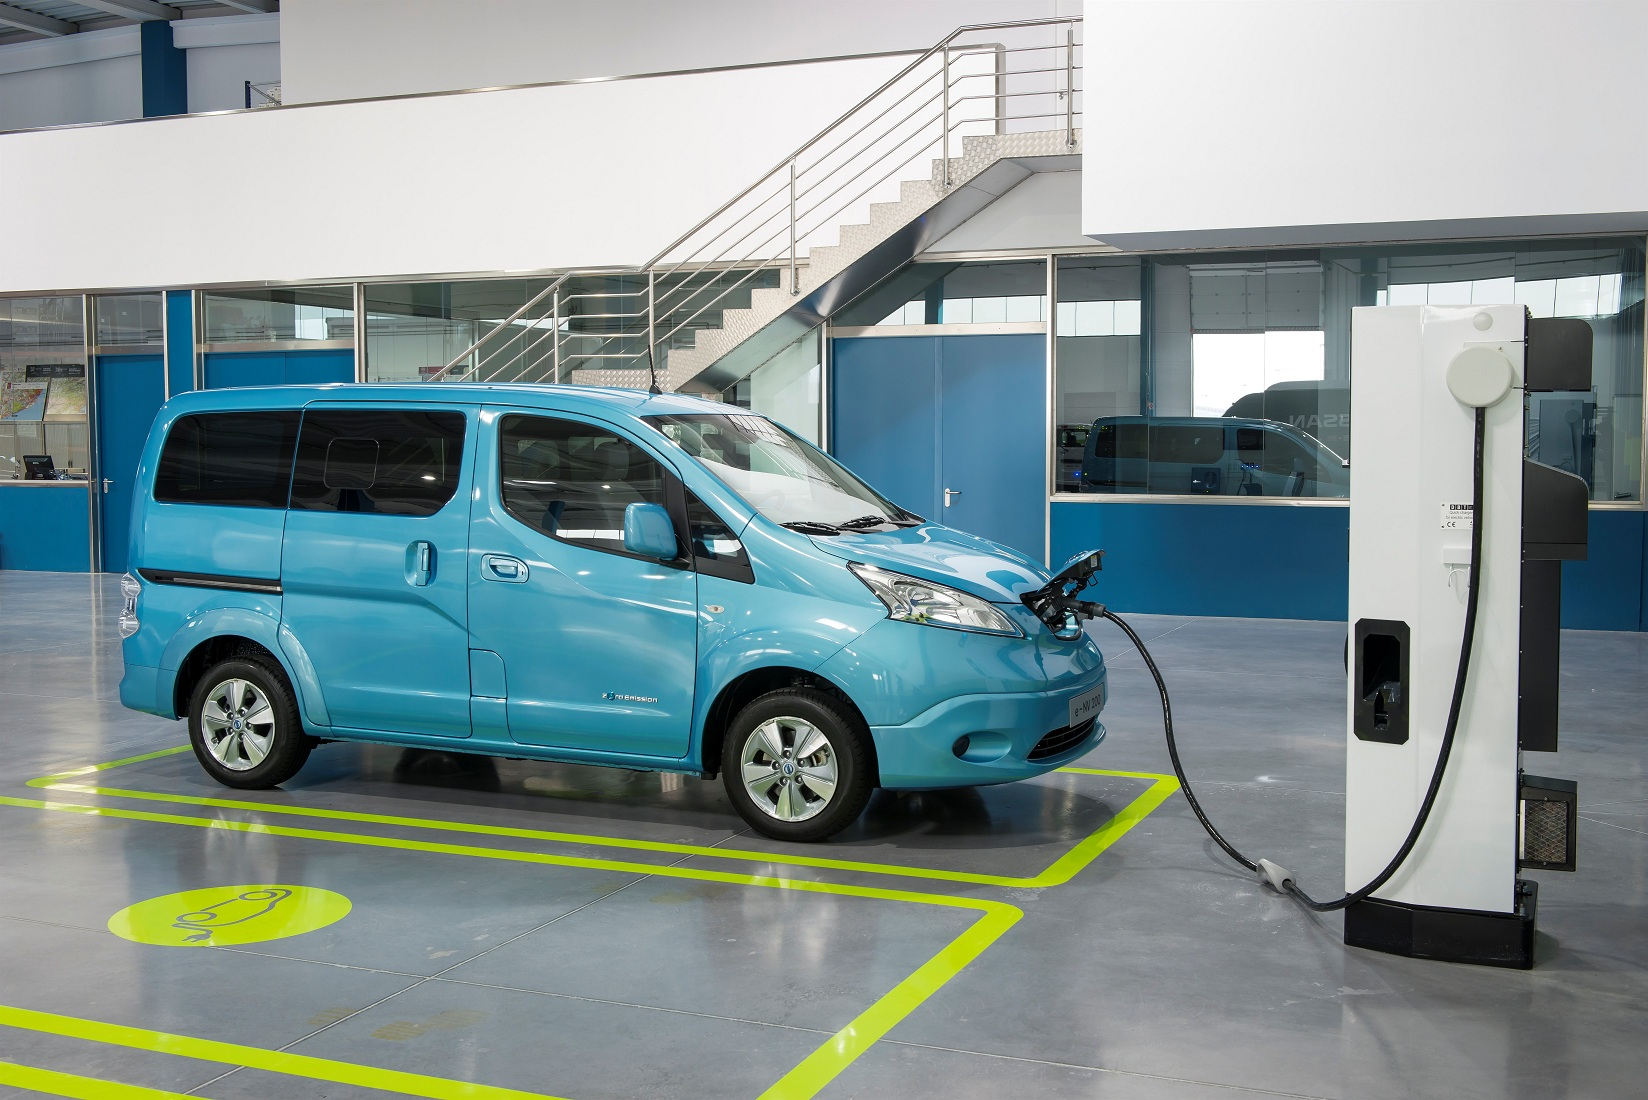 Charging the Nissan e-NV200